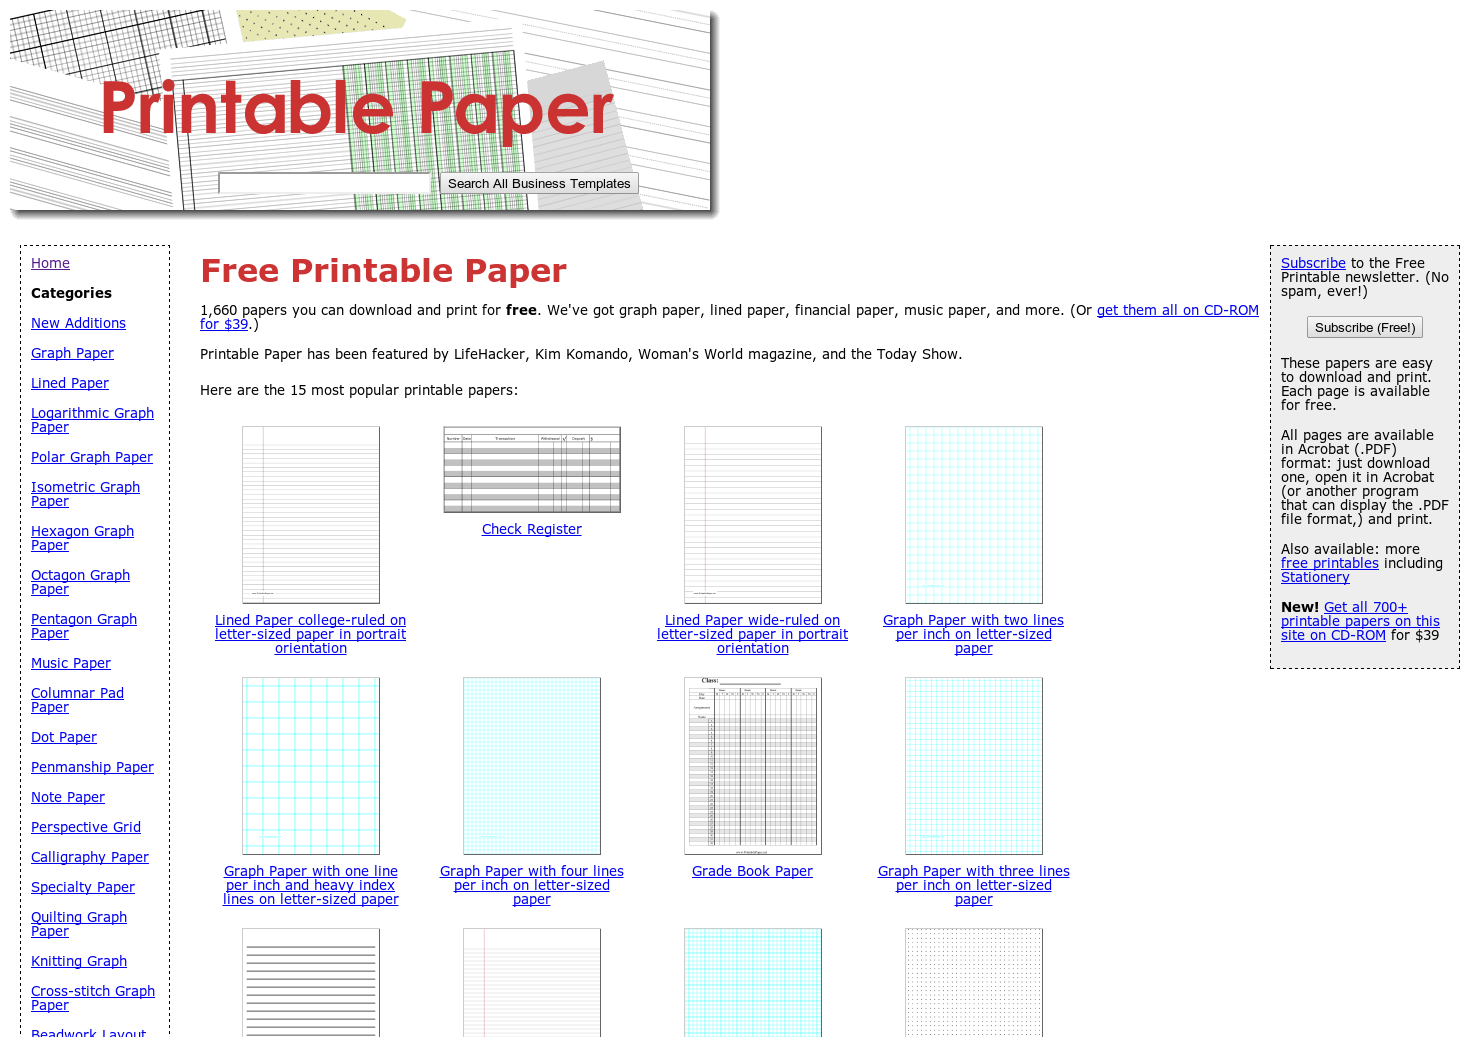 picture about Www Printablepaper Net named Printable Paper - Print Graph Paper, Higher education Dominated, or other